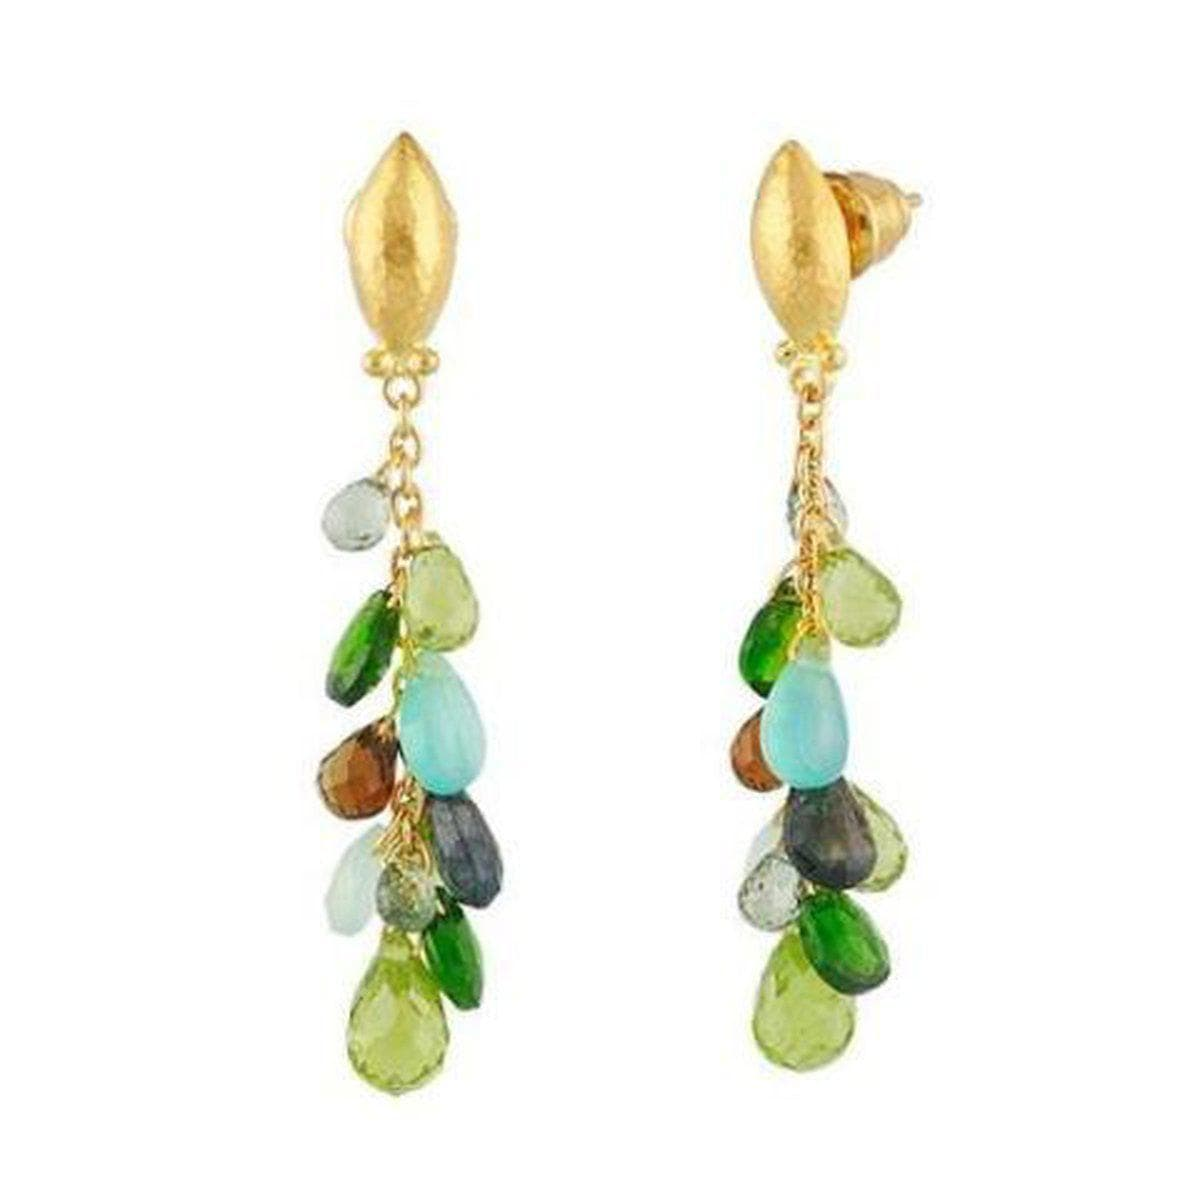 Delicate Hue 24K Gold Multi Stone Earrings - BE-GR-CLS-NV-GURHAN-Renee Taylor Gallery